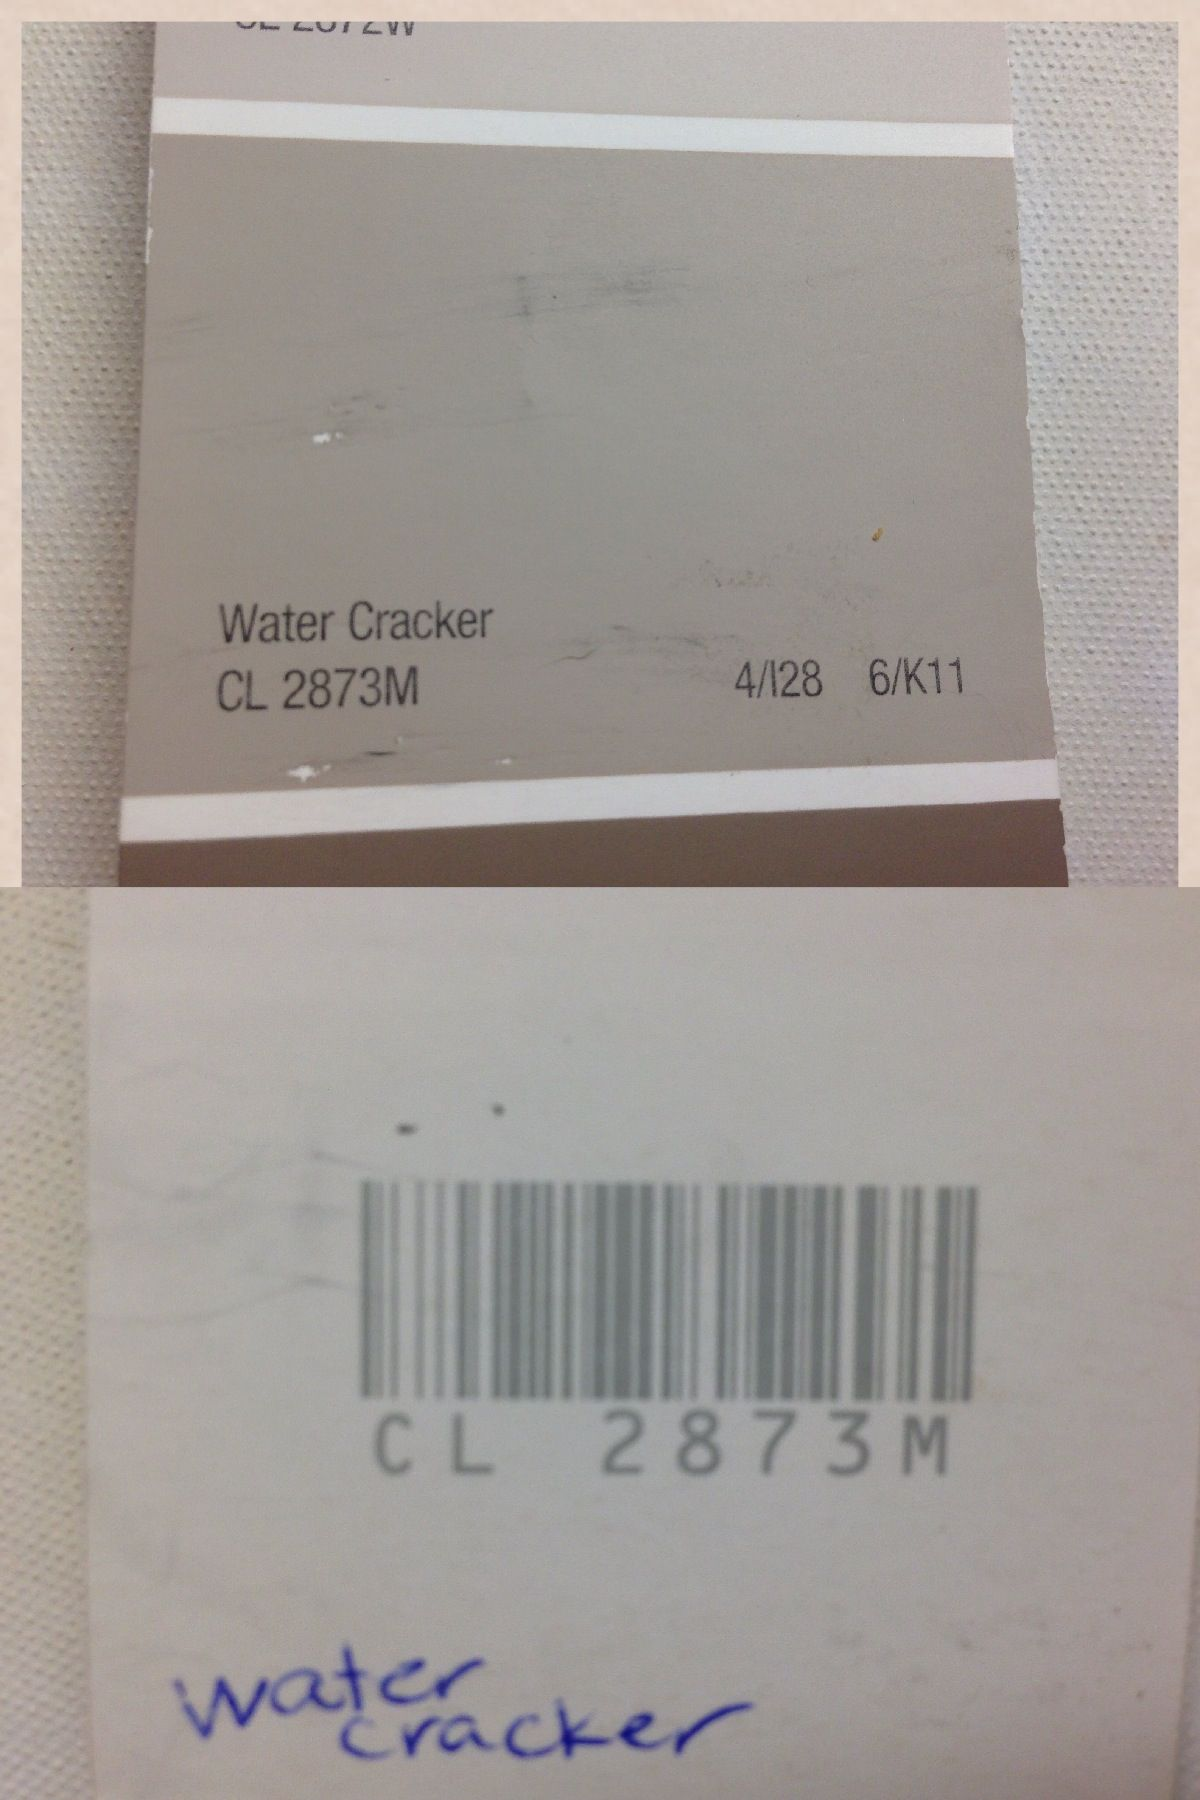 Water Cracker Paint Color For Walls Will Repaint In Some